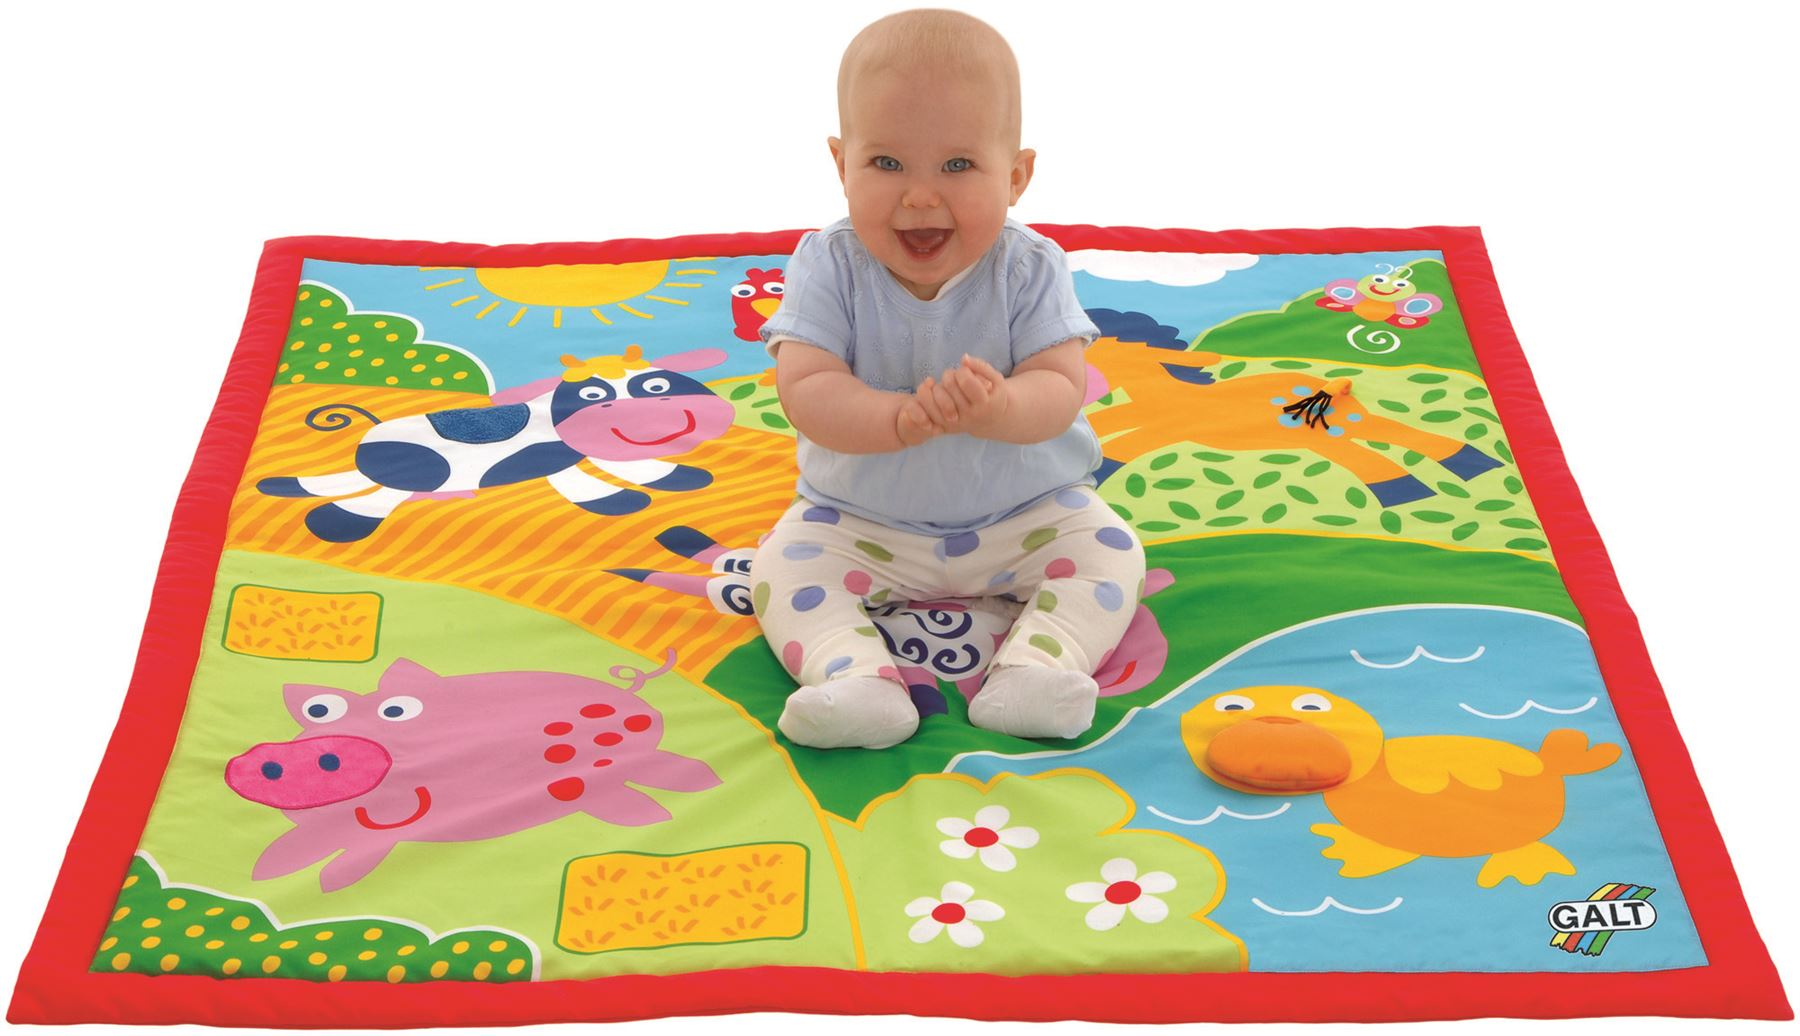 Galt Wiggly Worm Baby Toddler Toys And Activities Bn Toys For Baby